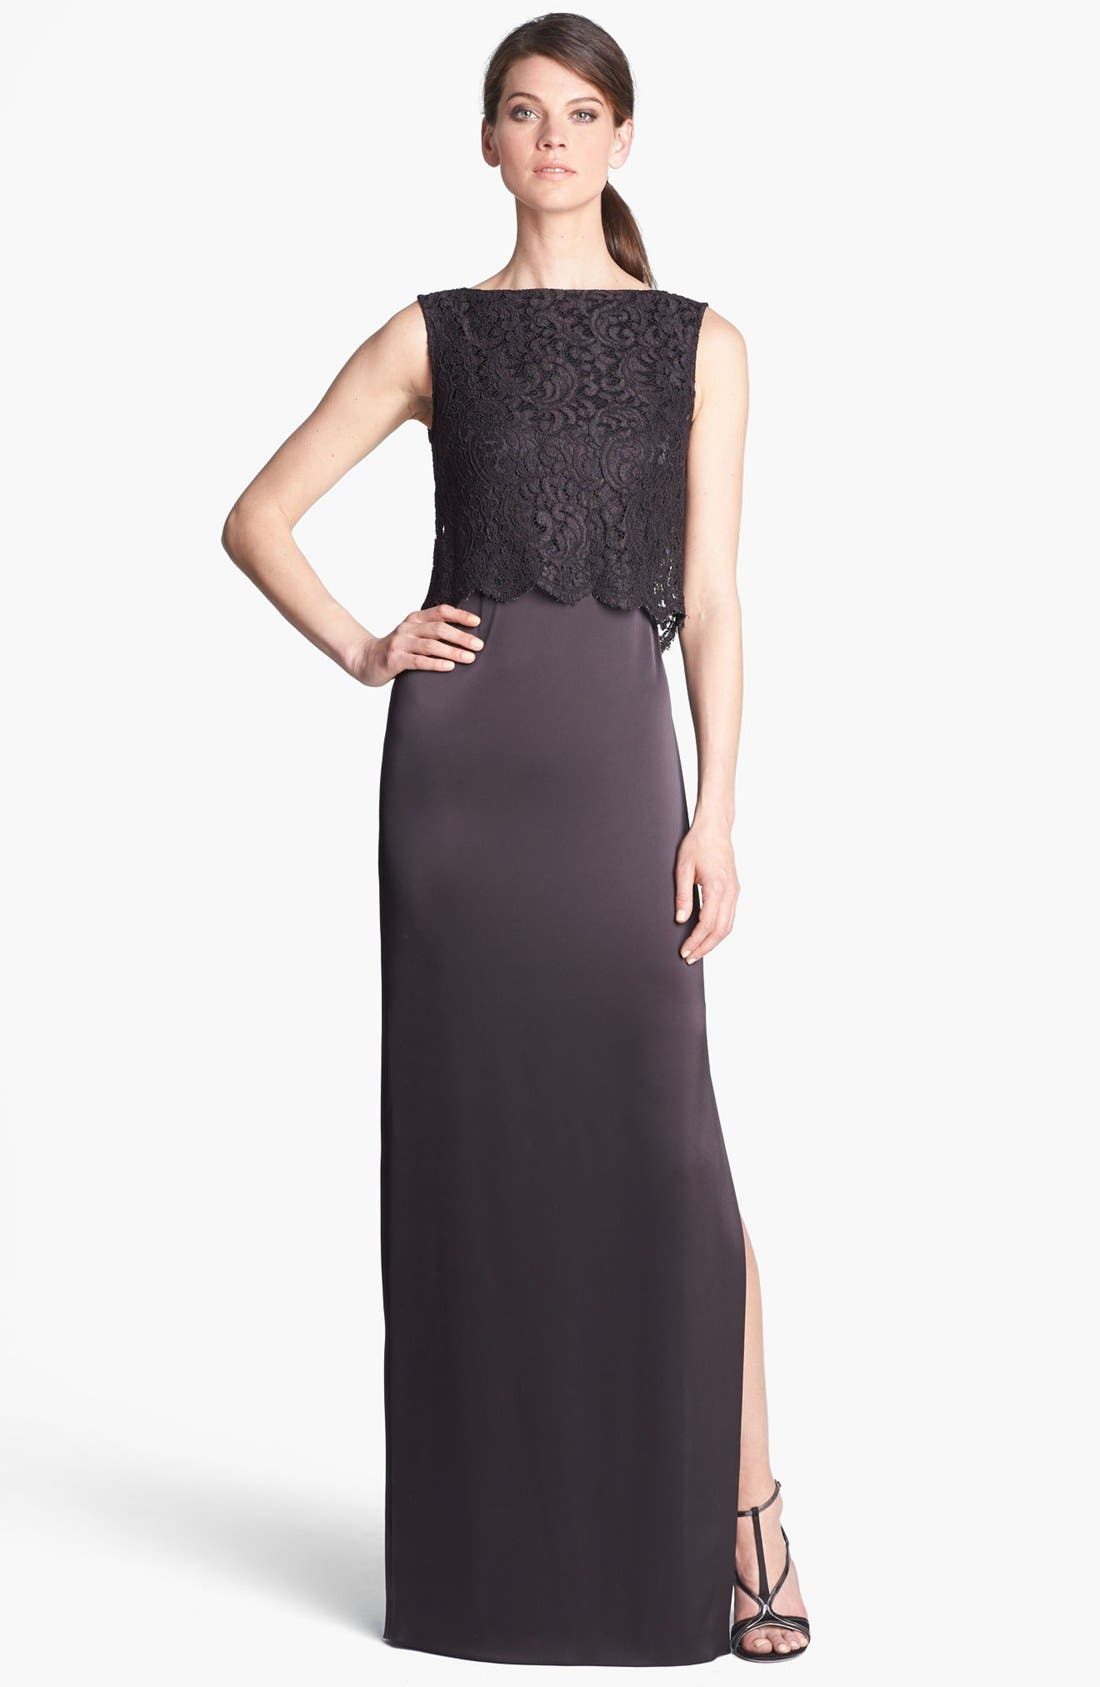 Main Image - St. John Collection Plume Lace Overlay Liquid Satin Gown